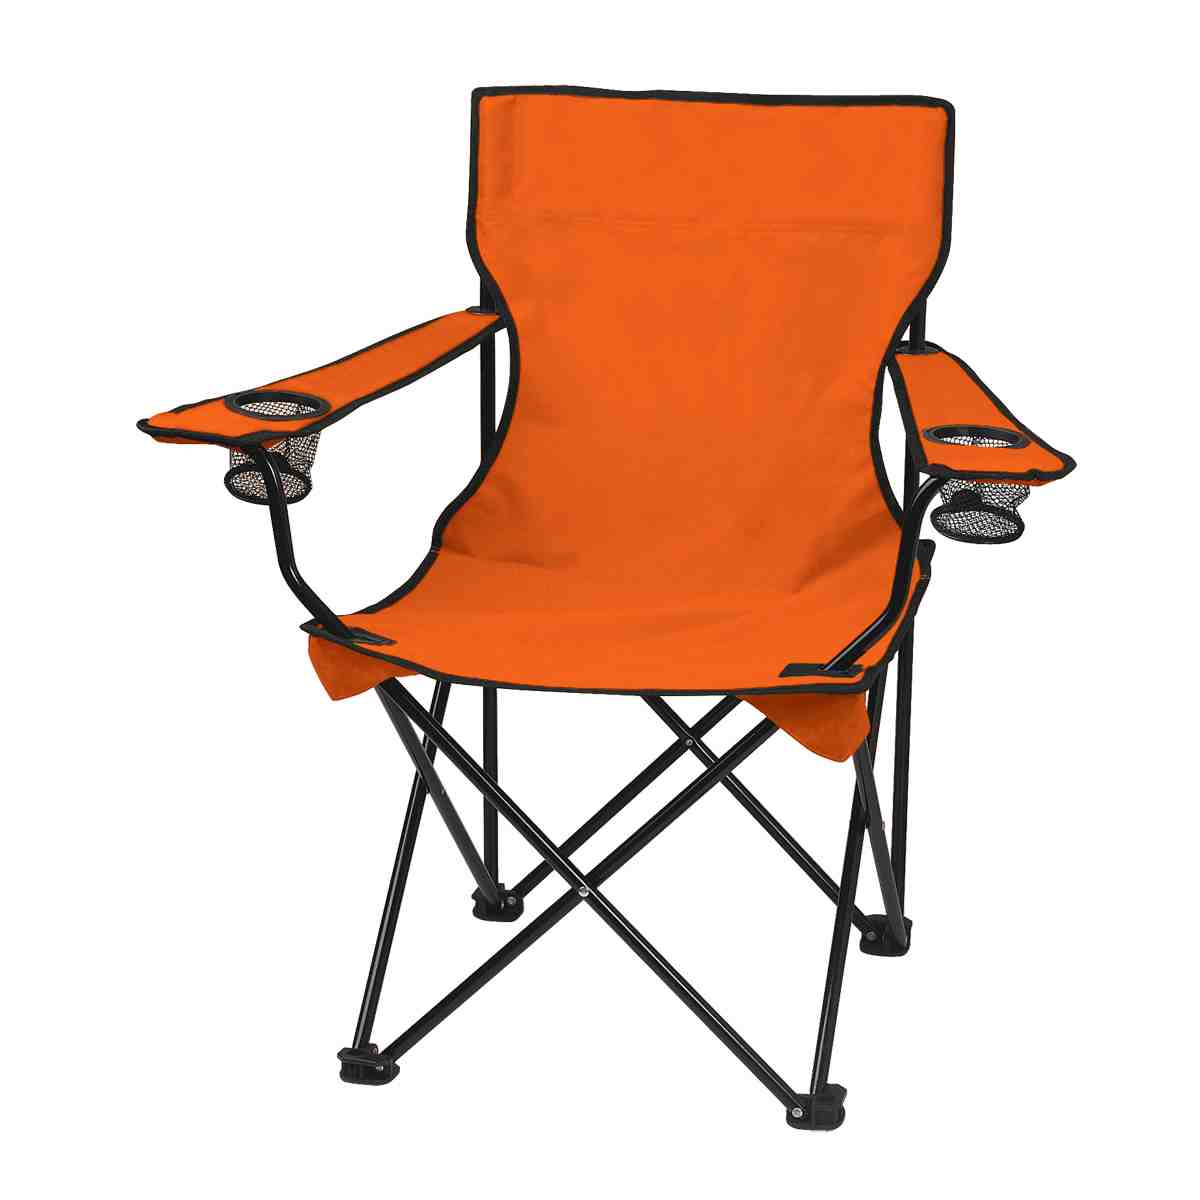 Outdoor Folding Chairs Outdoor Folding Chairs How To Buy The Best For All